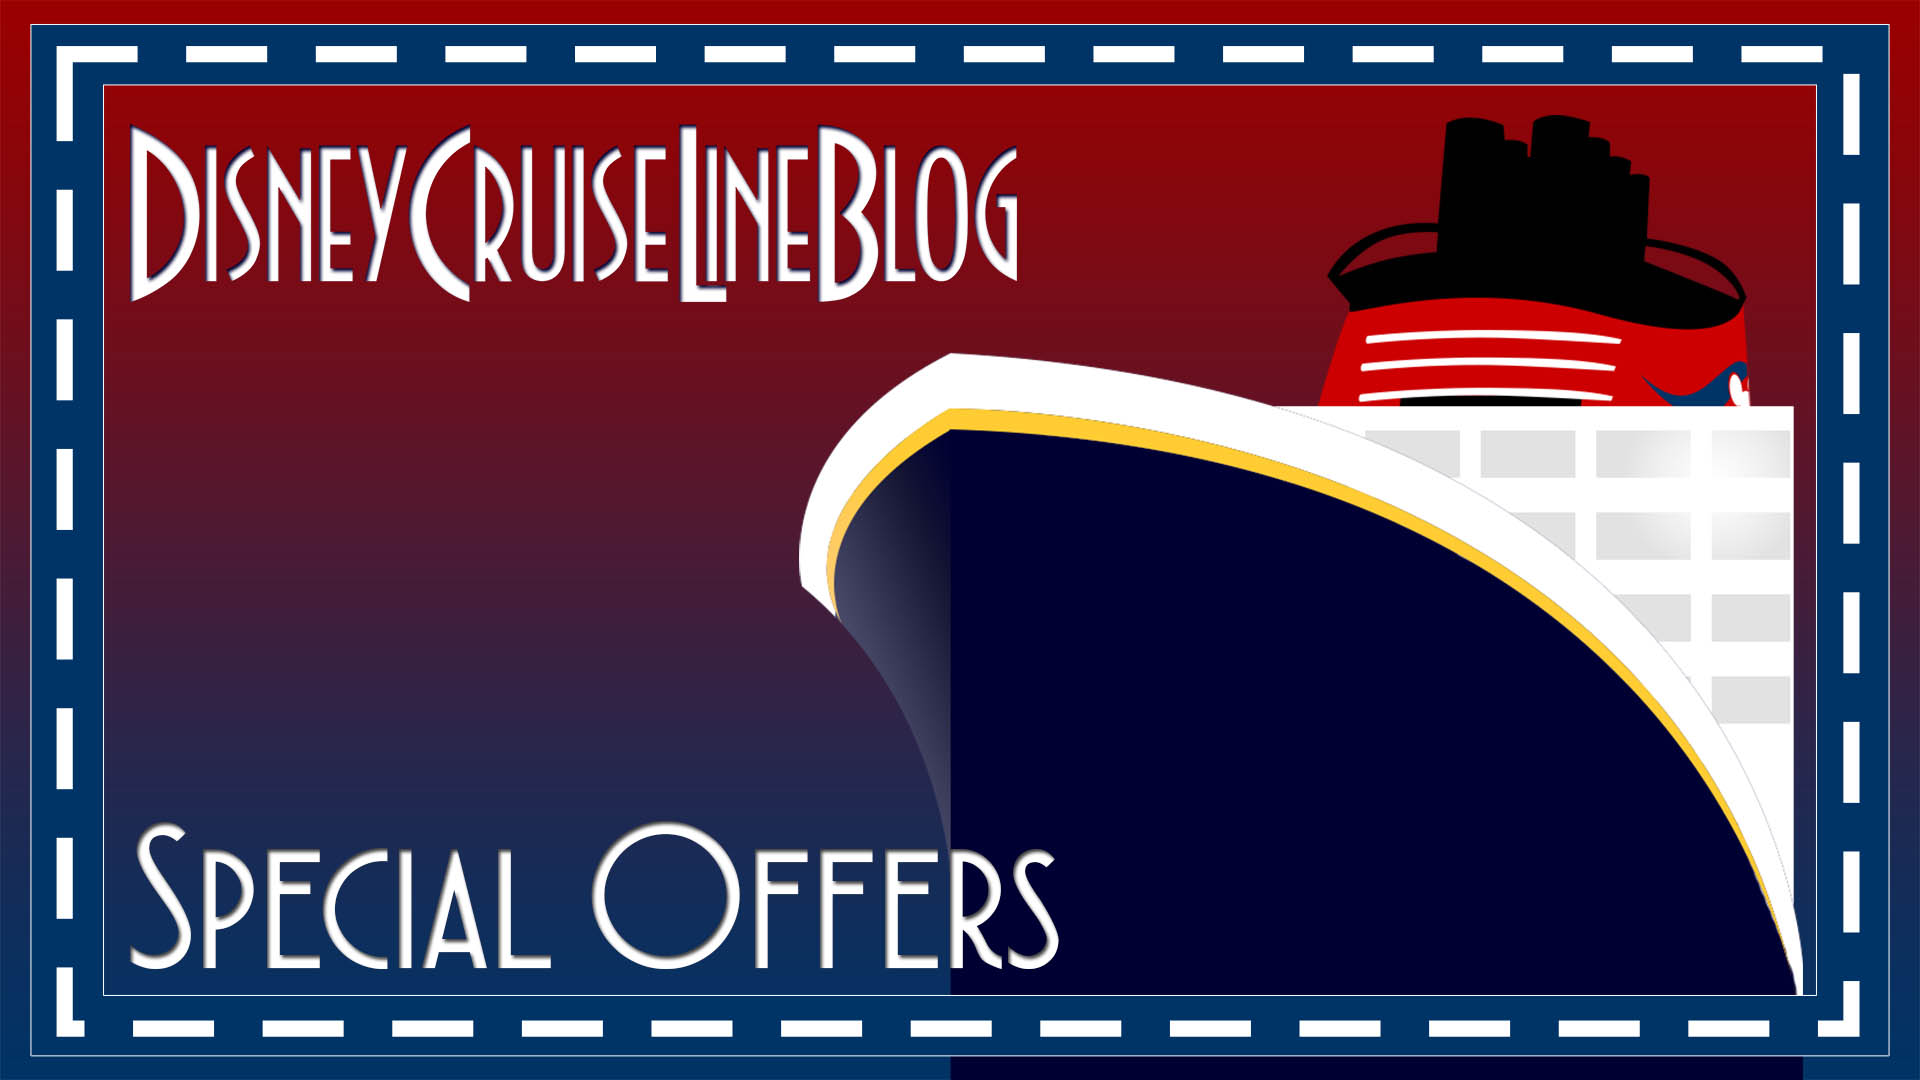 DCLBlog Special Offers